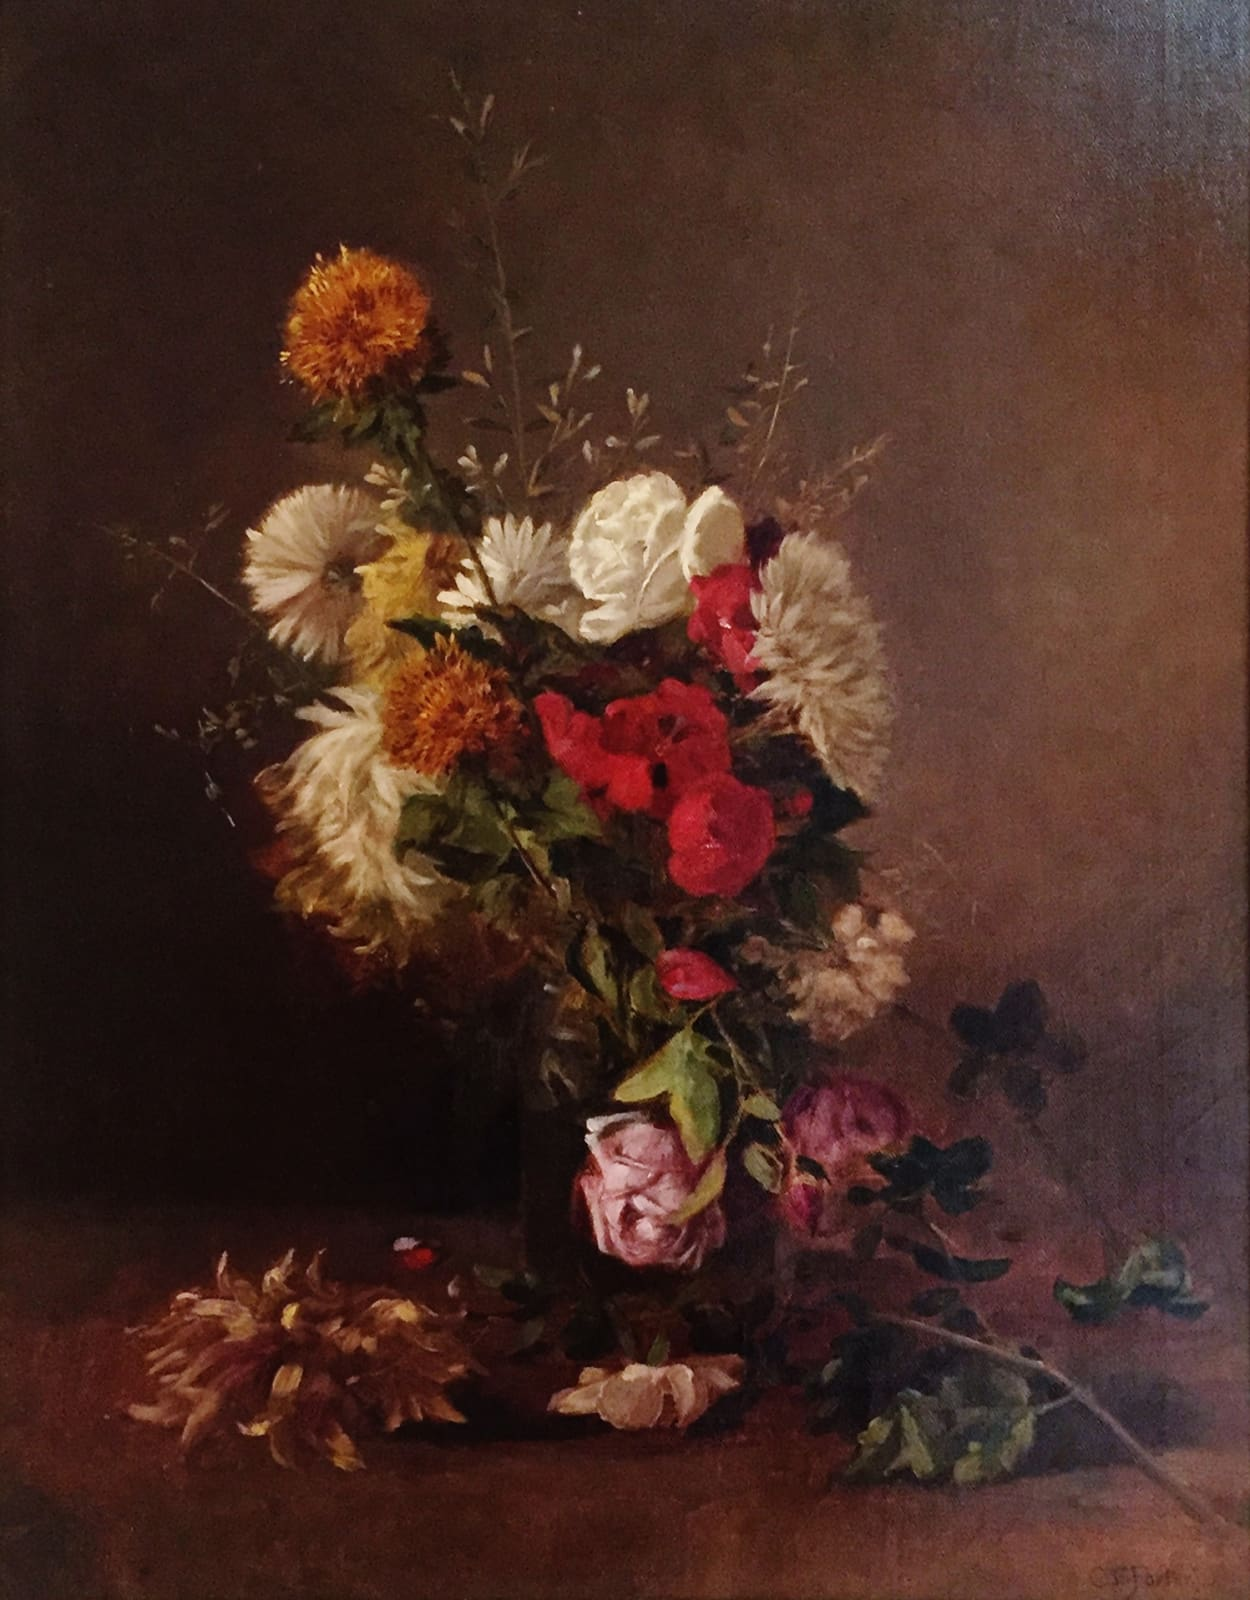 Charles Ethan Porter, Florae - Mixed Bouquet Roses in Clear Vase